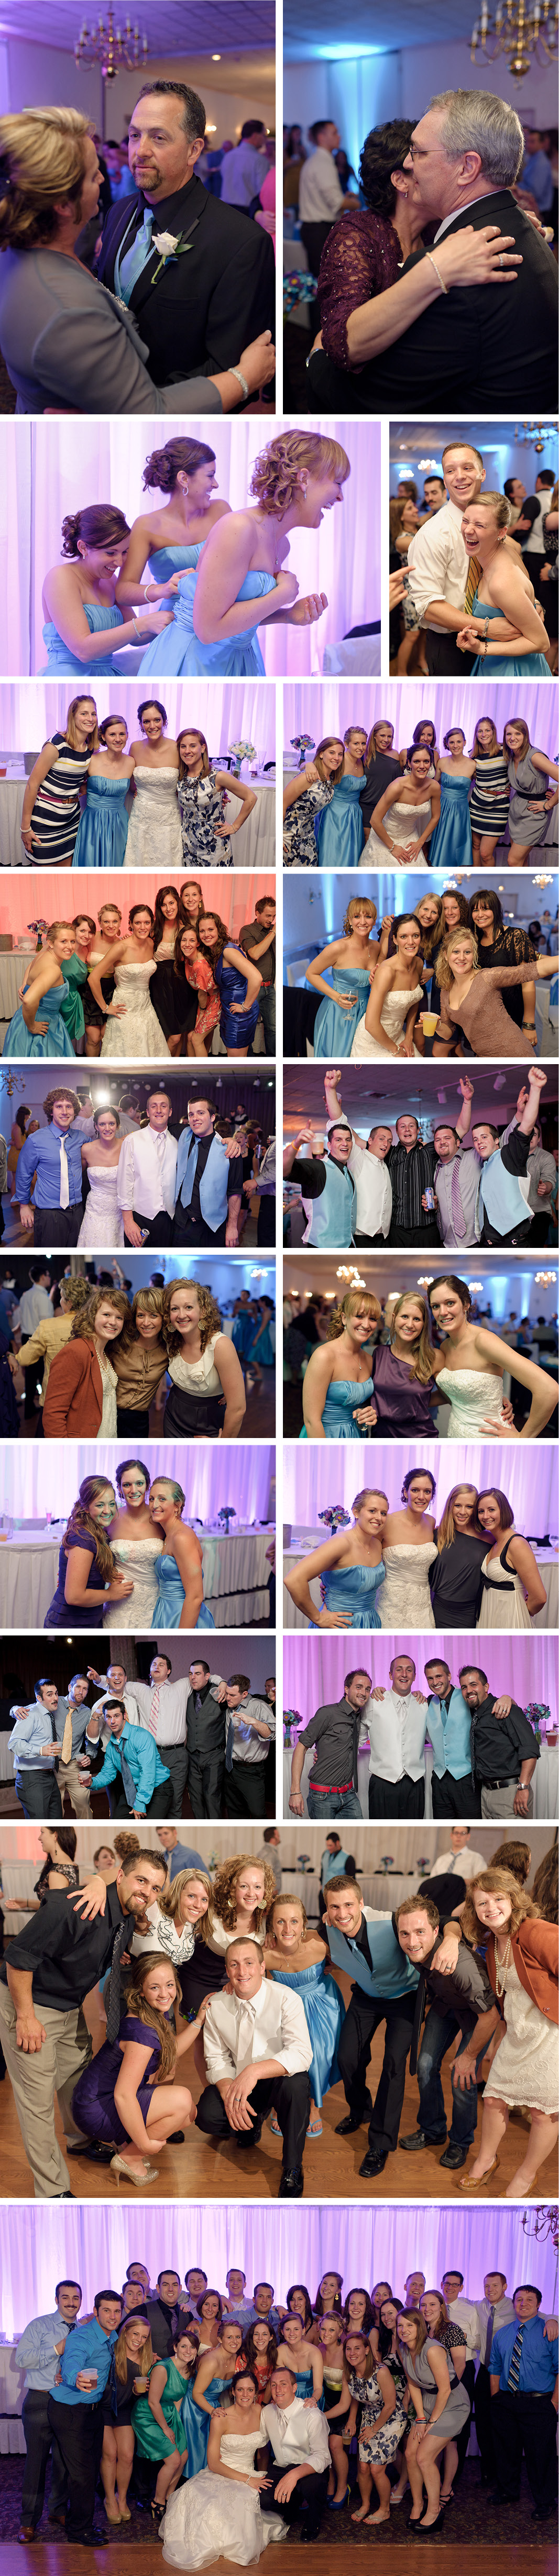 Photojournalistic Lantern Lodge Myerstown wedding by Jeremy Bischoff Photo